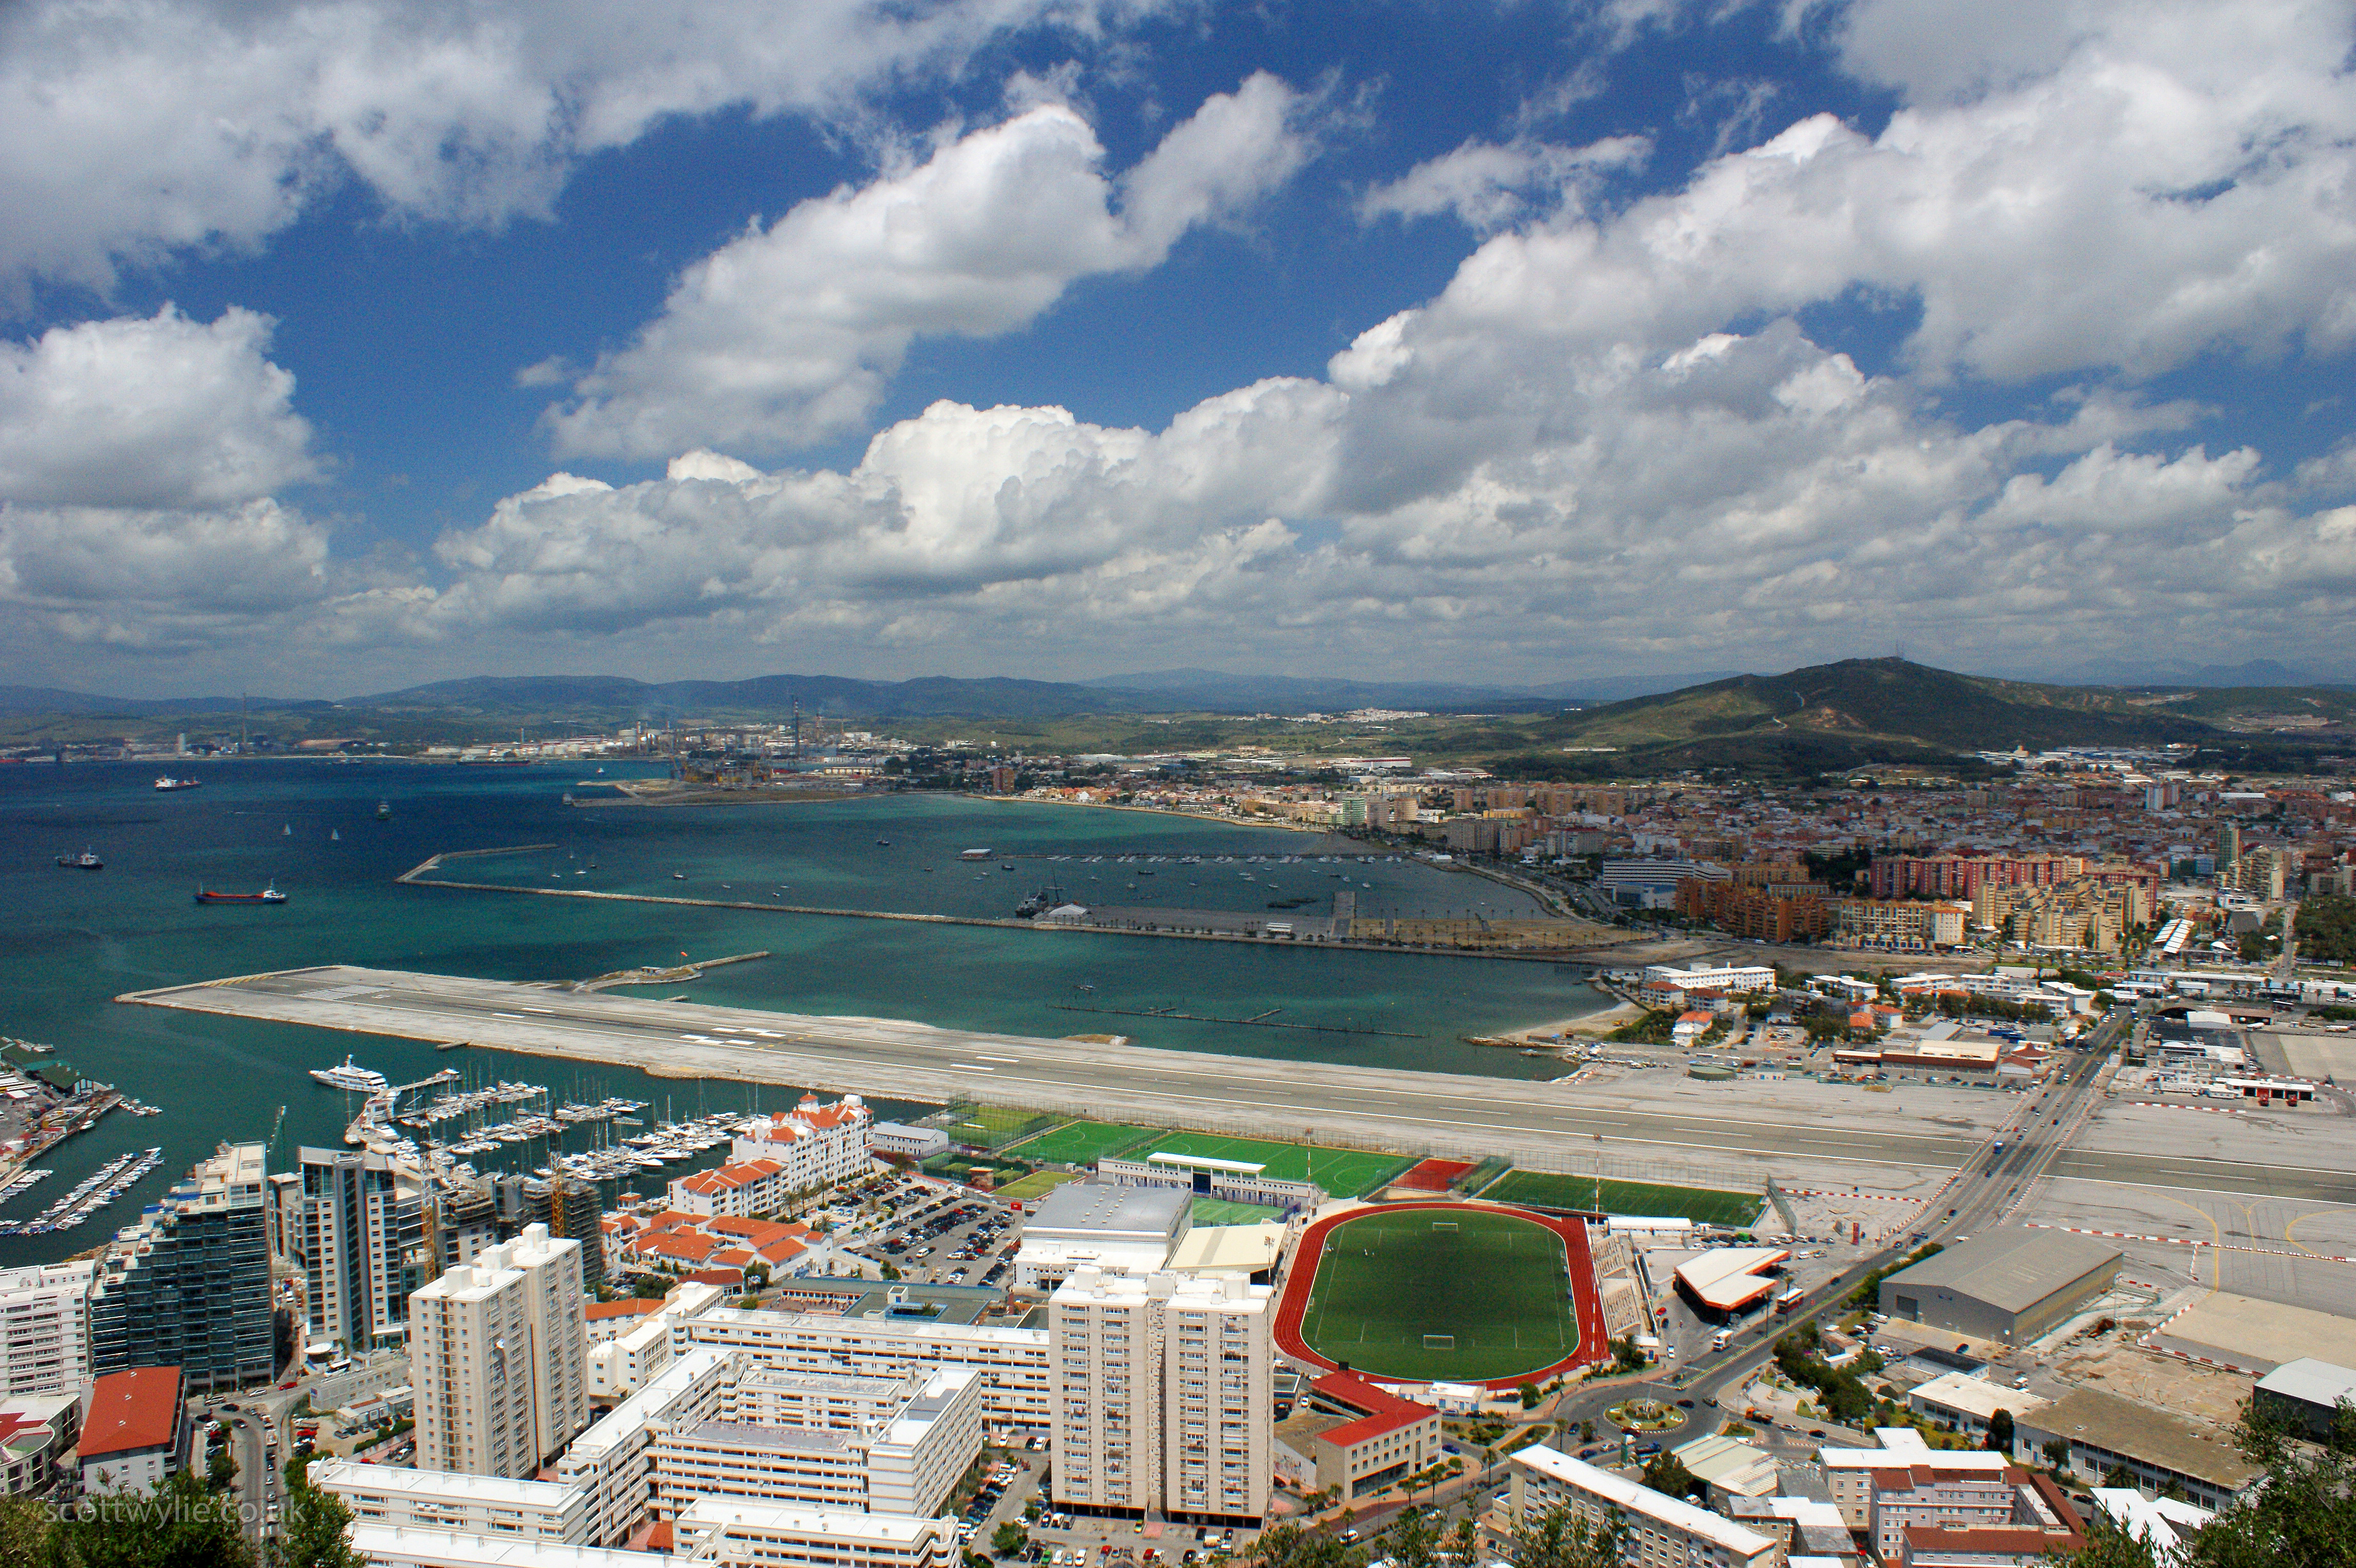 Airport_and_Stadium_in_Gibraltar